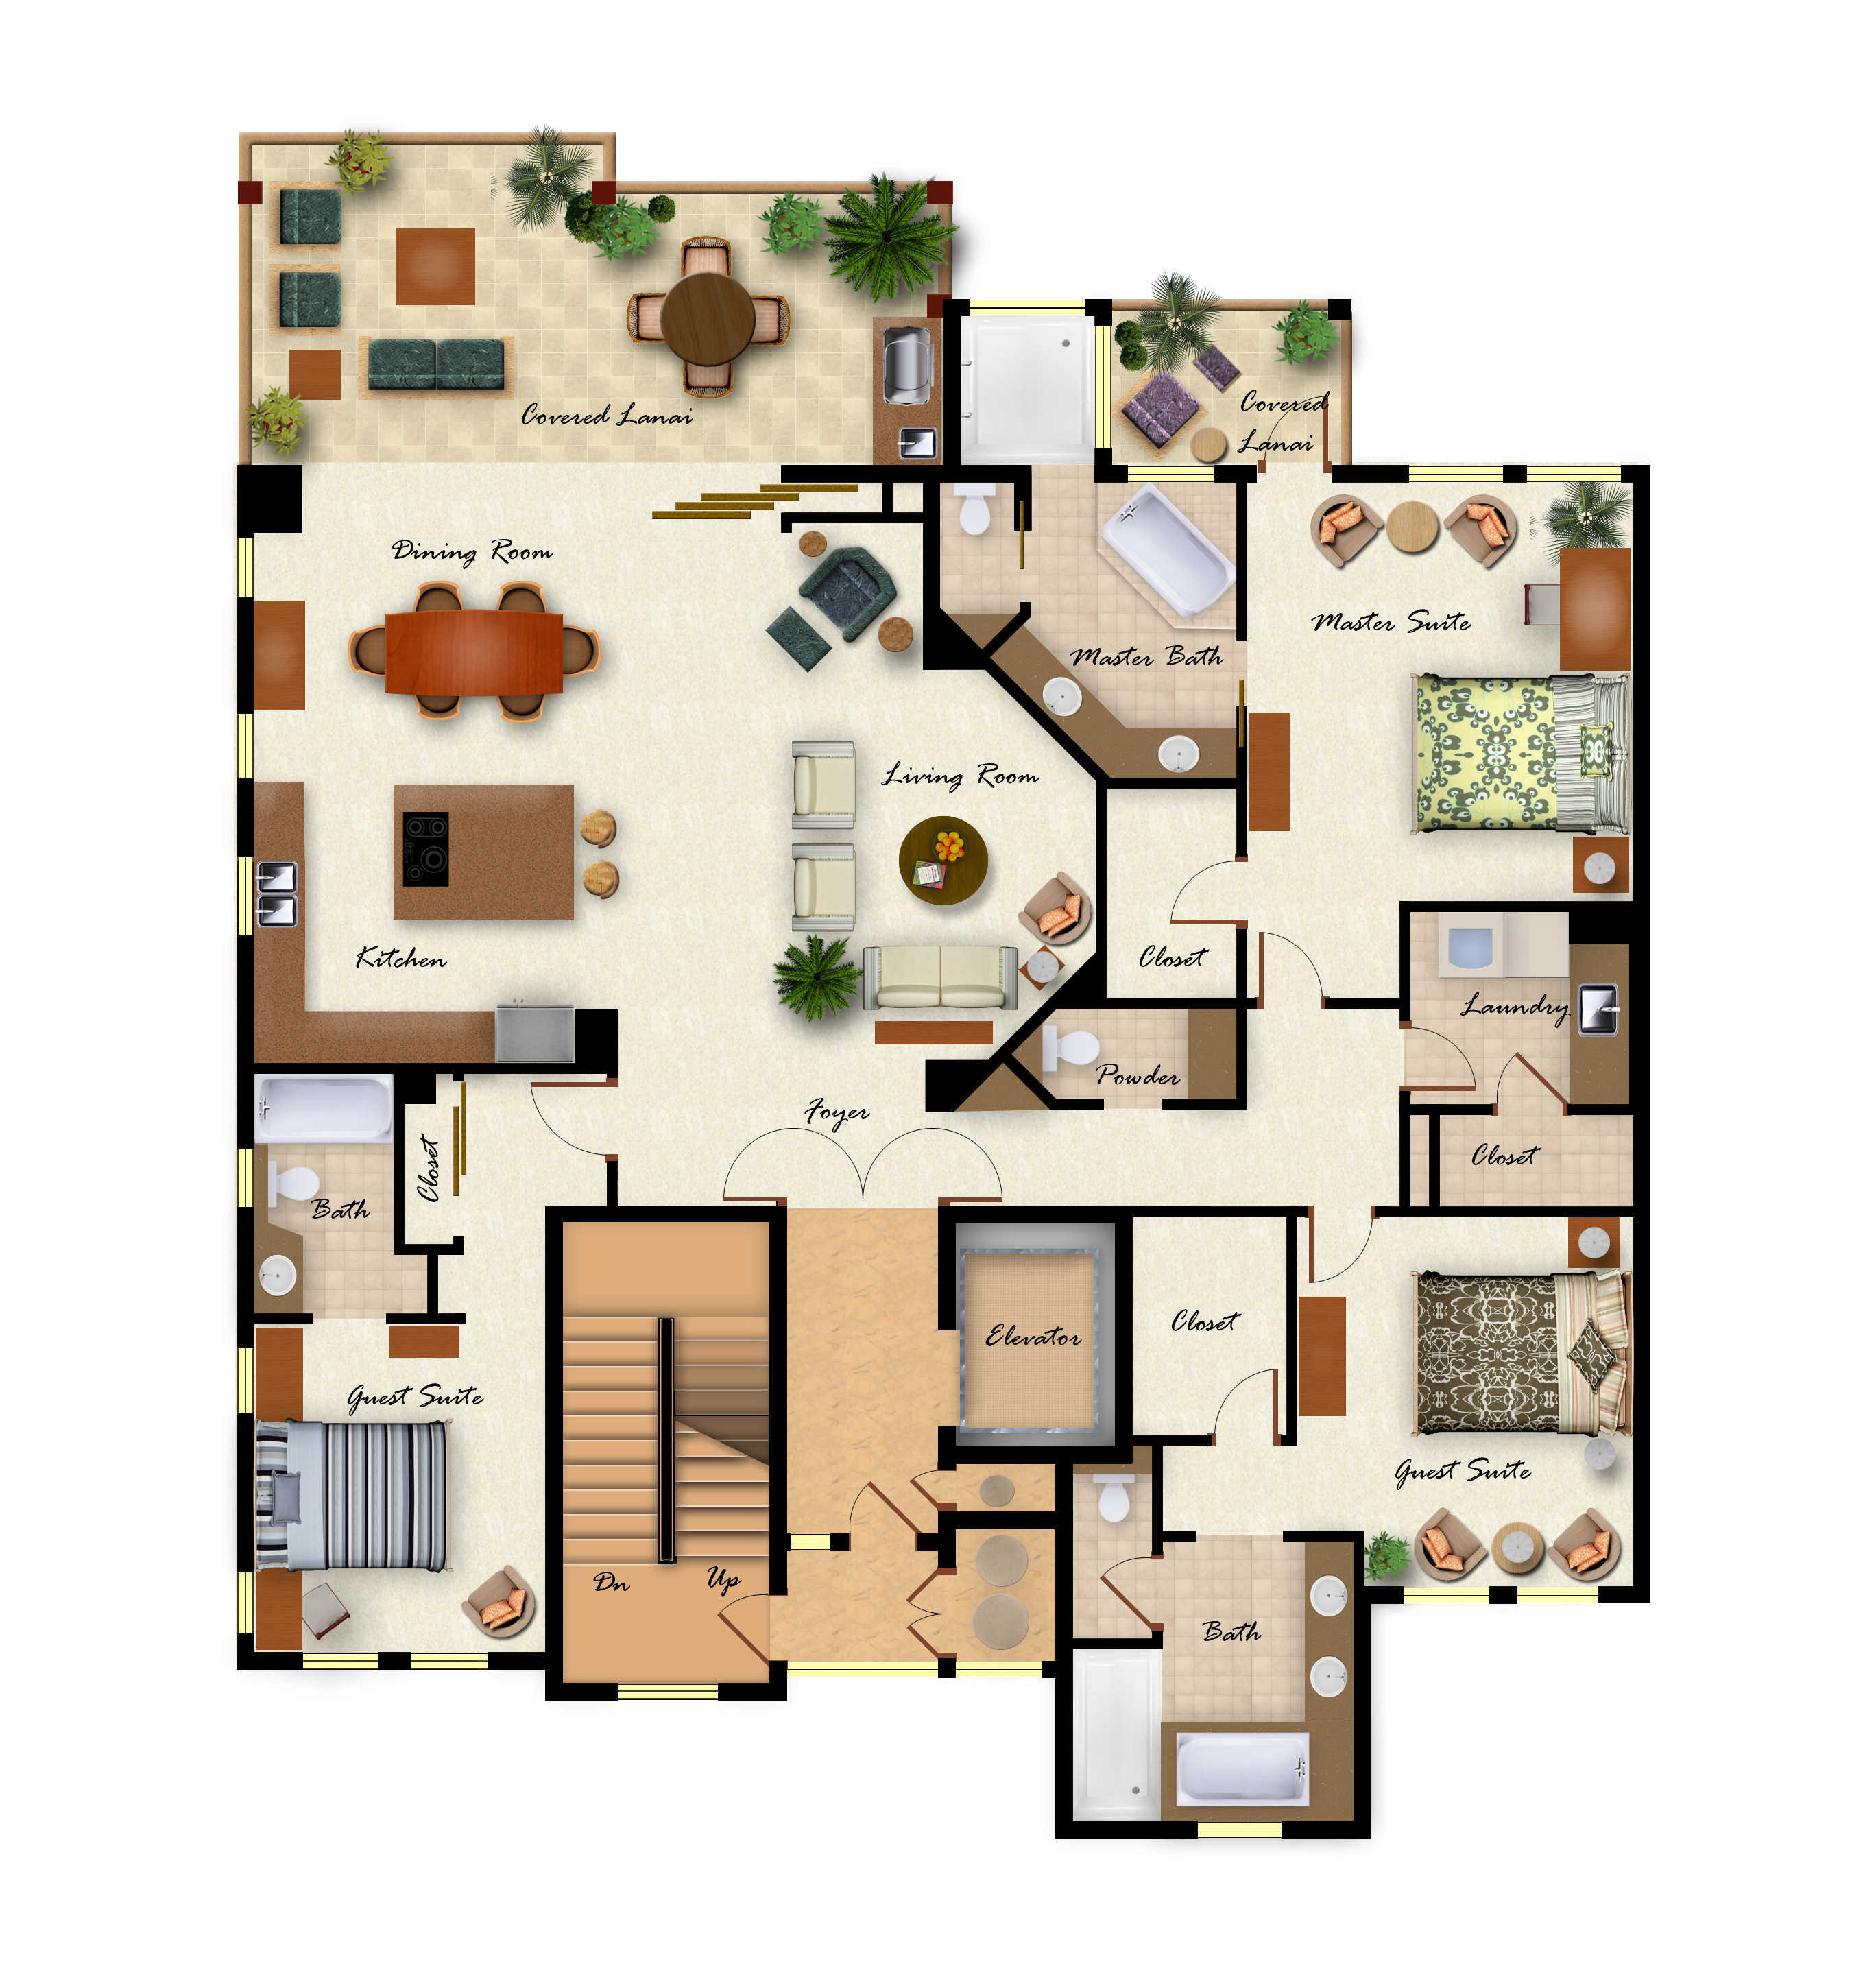 Condo floor plan 1 bedroom condo floor plans 3 bedroom for 1 bedroom condo floor plans